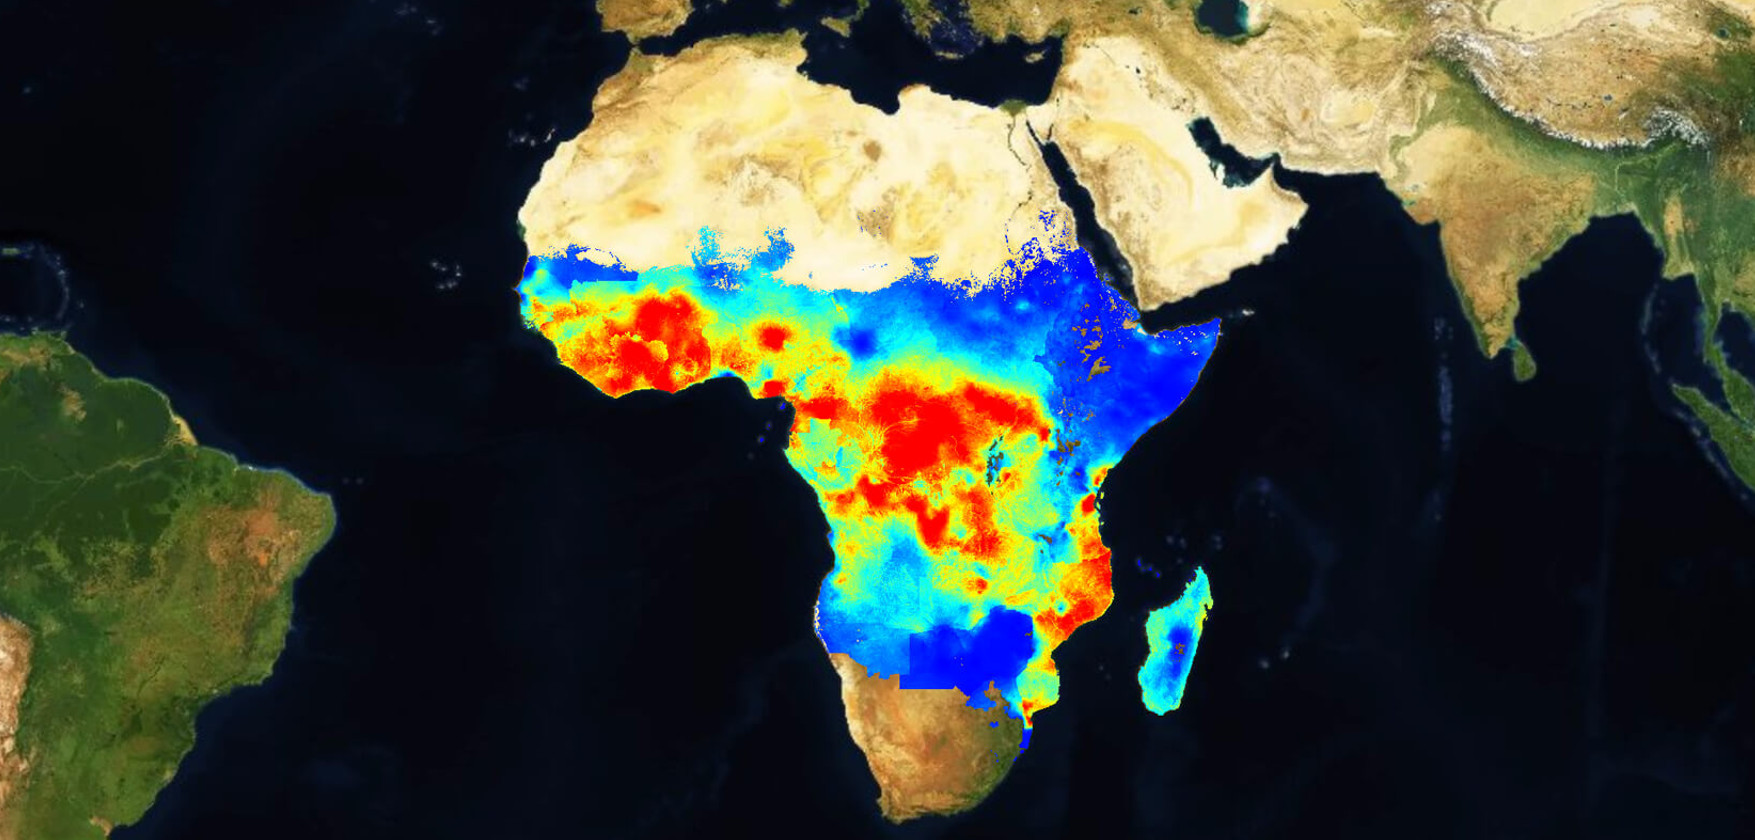 Malaria Atlas Project map